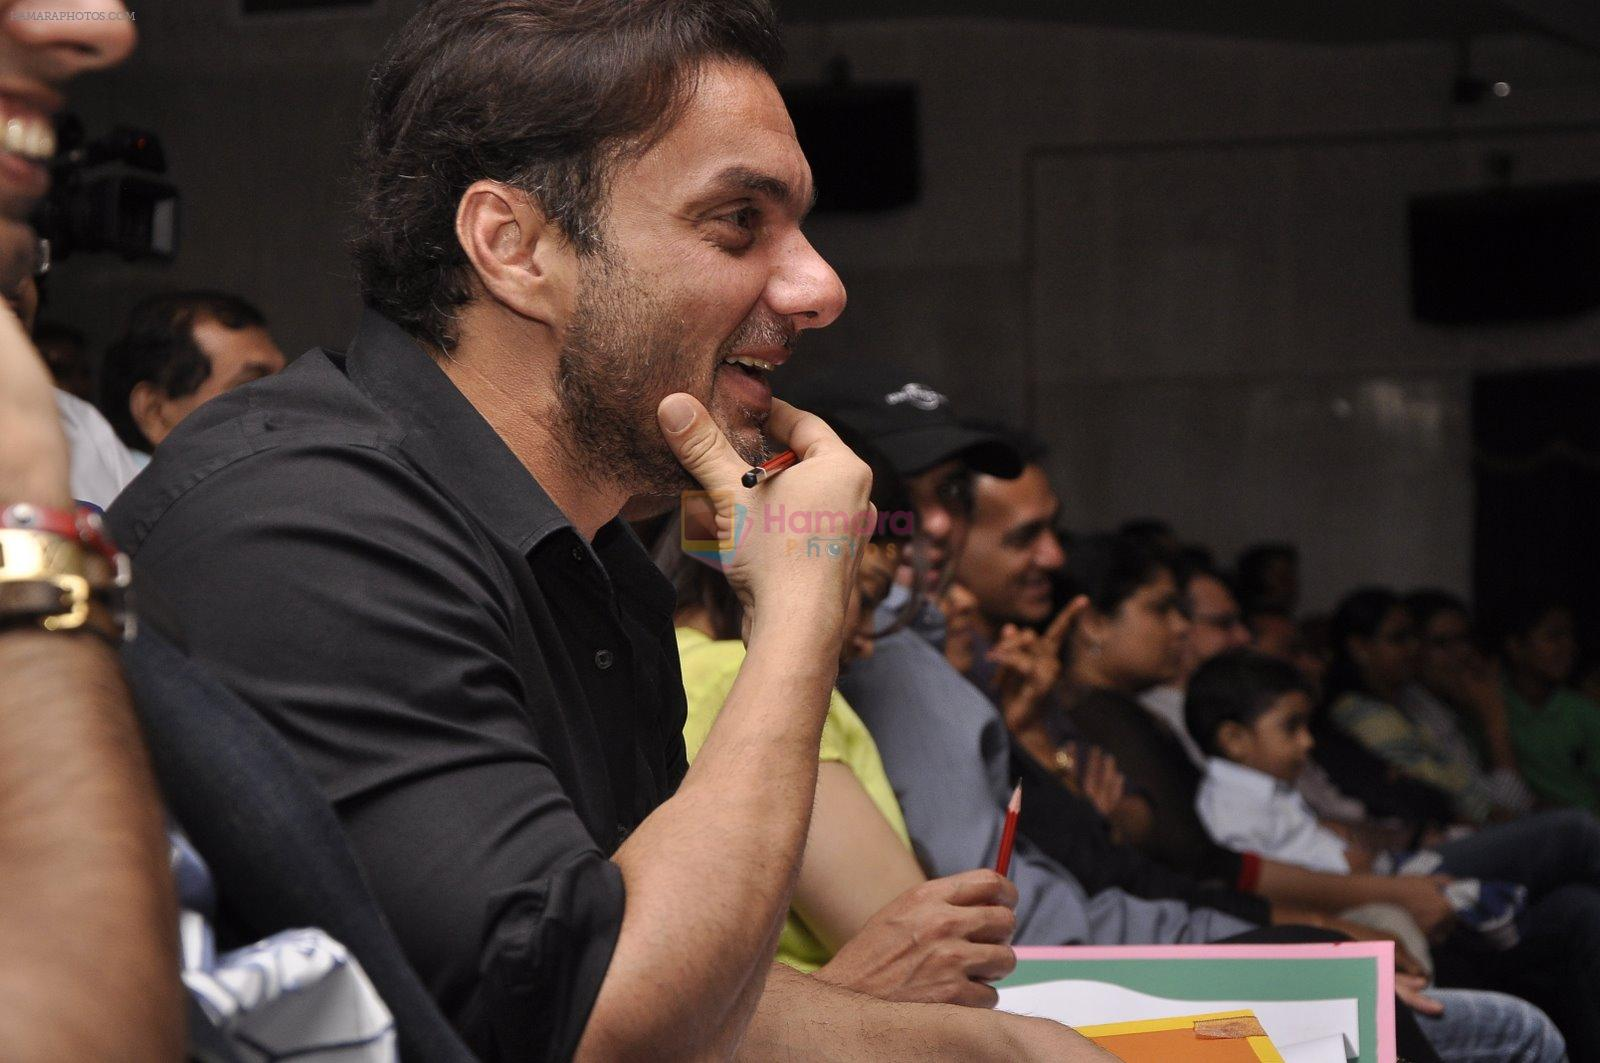 Sohail Khan, Alvira Khan, Atul Agnihotri, Vatsal Seth at School Event in Mumbai on 9th Jan 2015